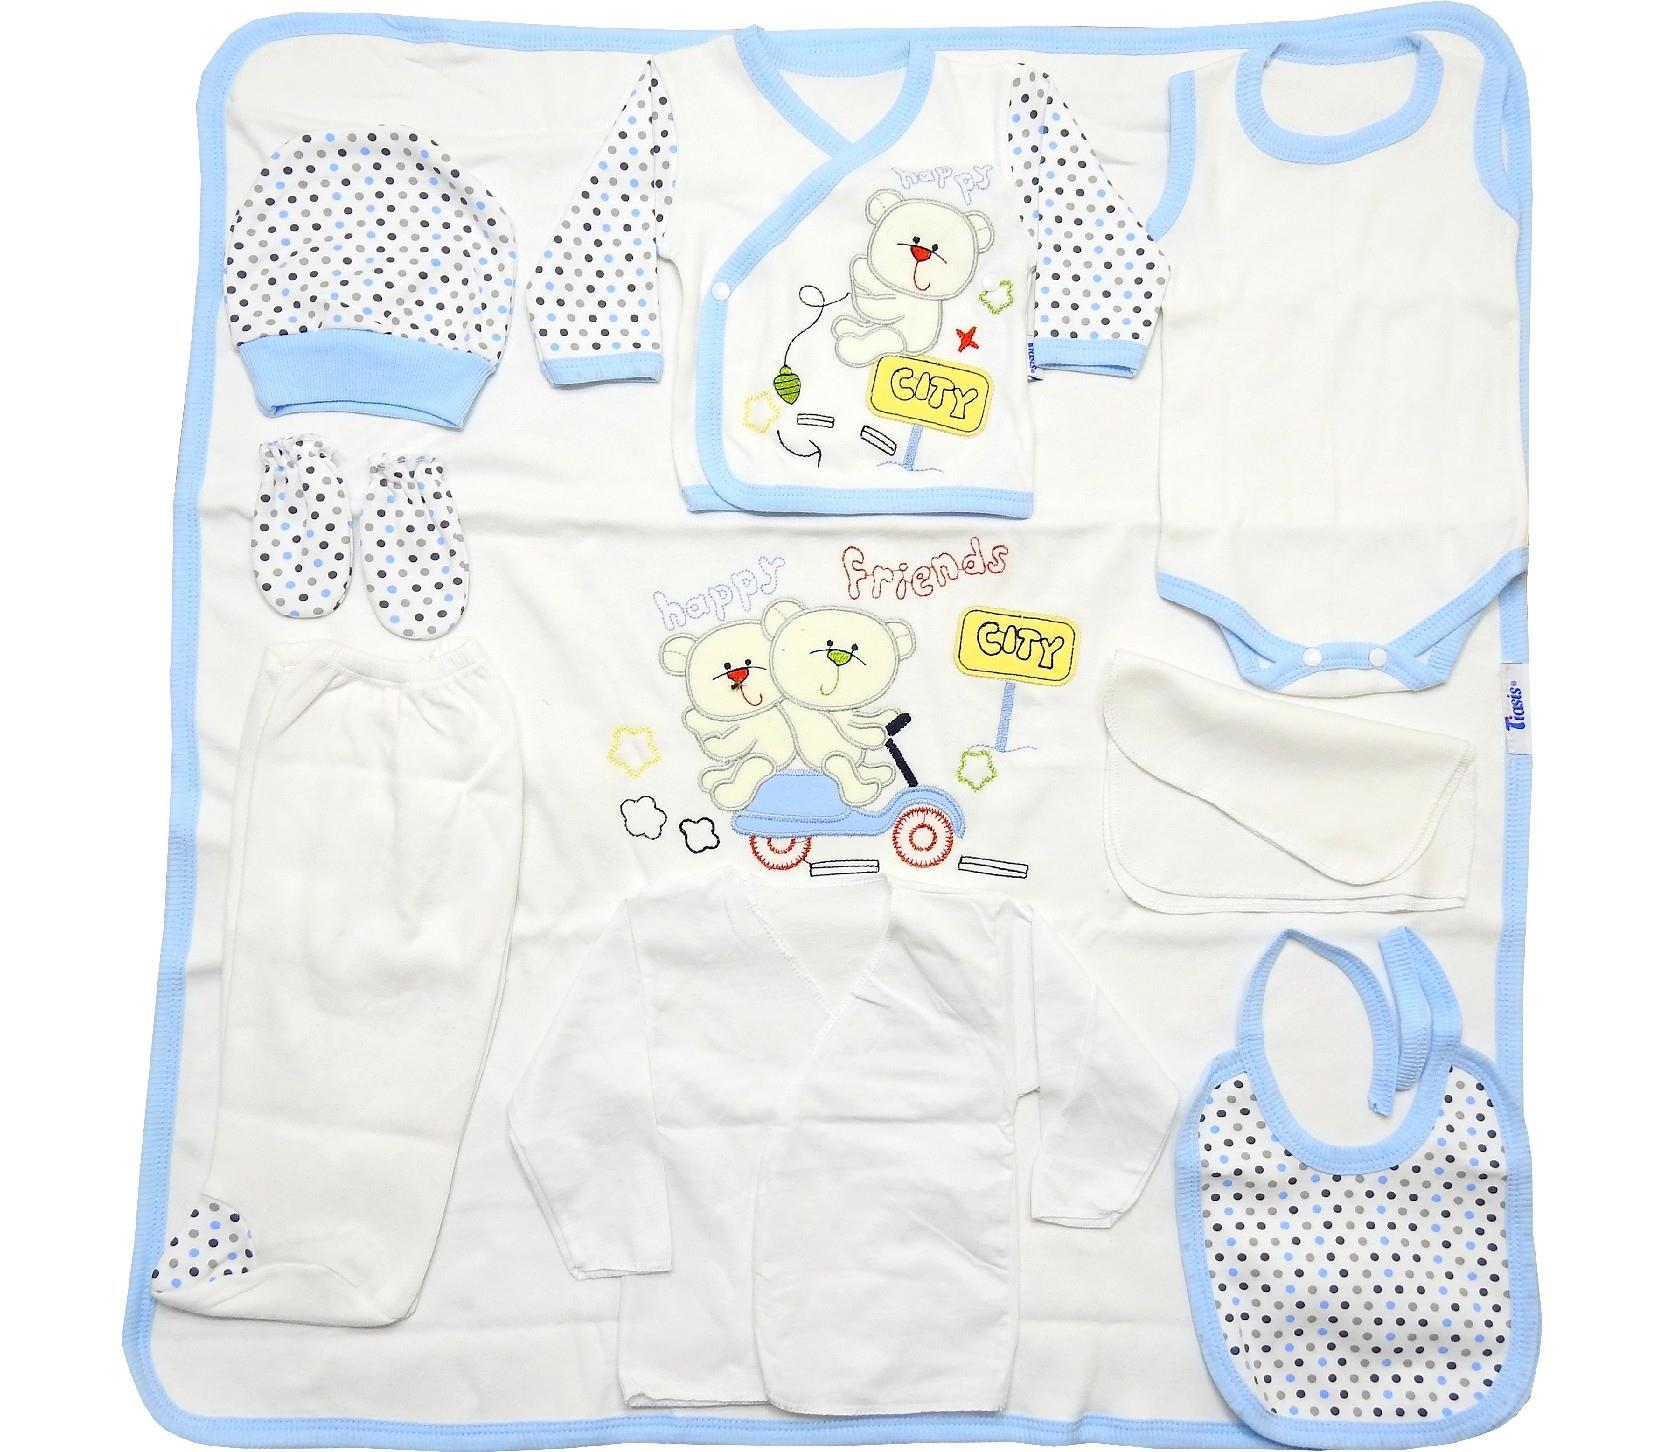 Wholesale newborn set, 10 pieces in package